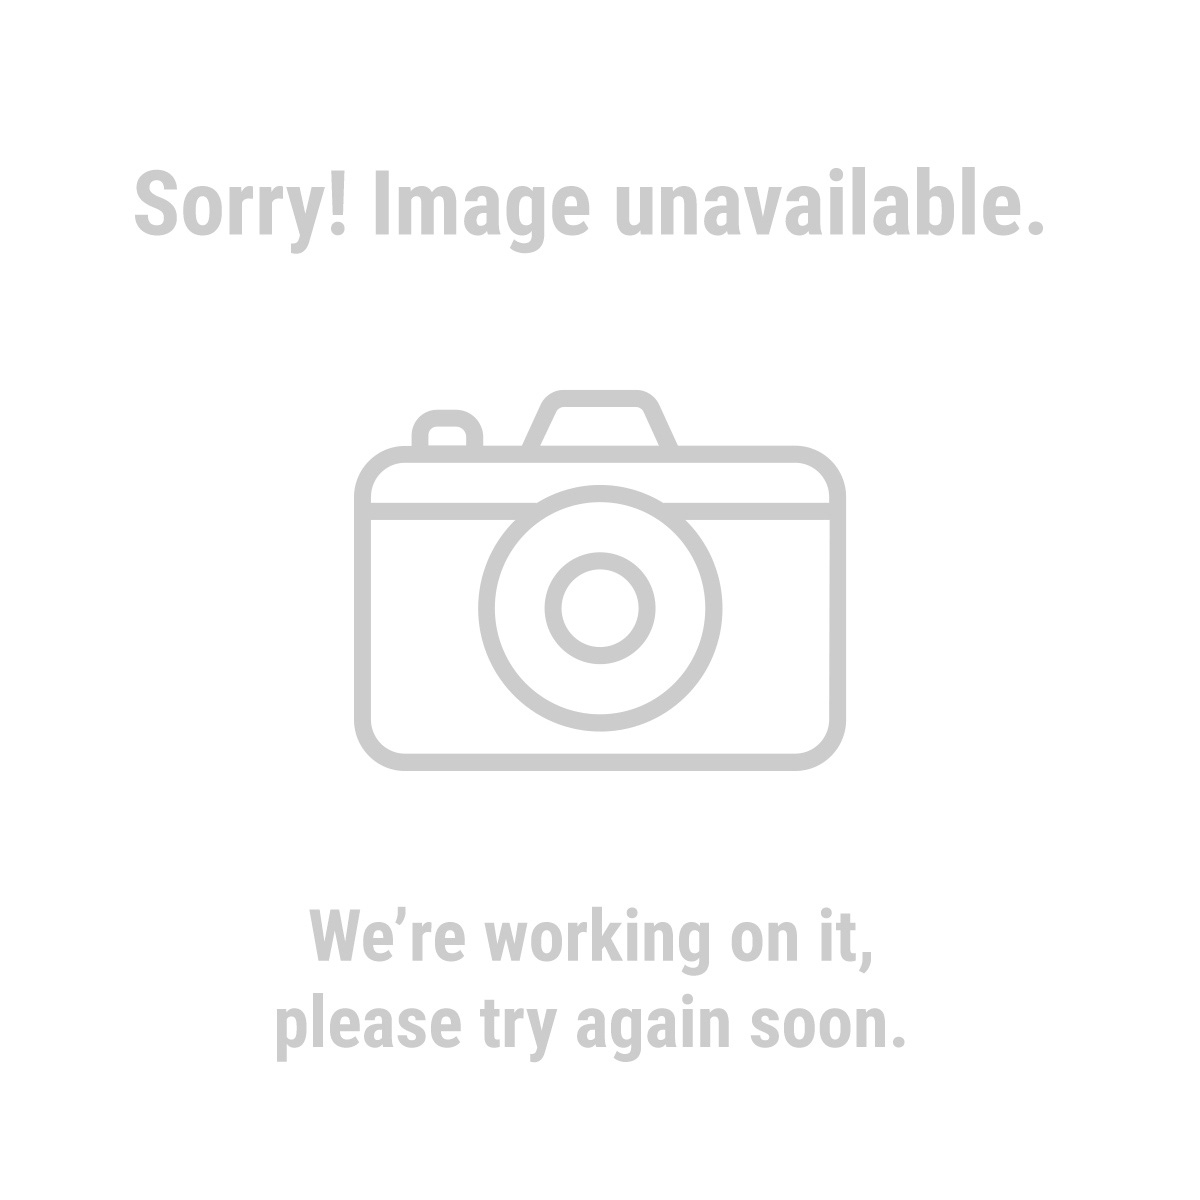 "Harbor Freight Tools 69112 2 Piece 3-1/2"" 9 LED Mini Flashlight"